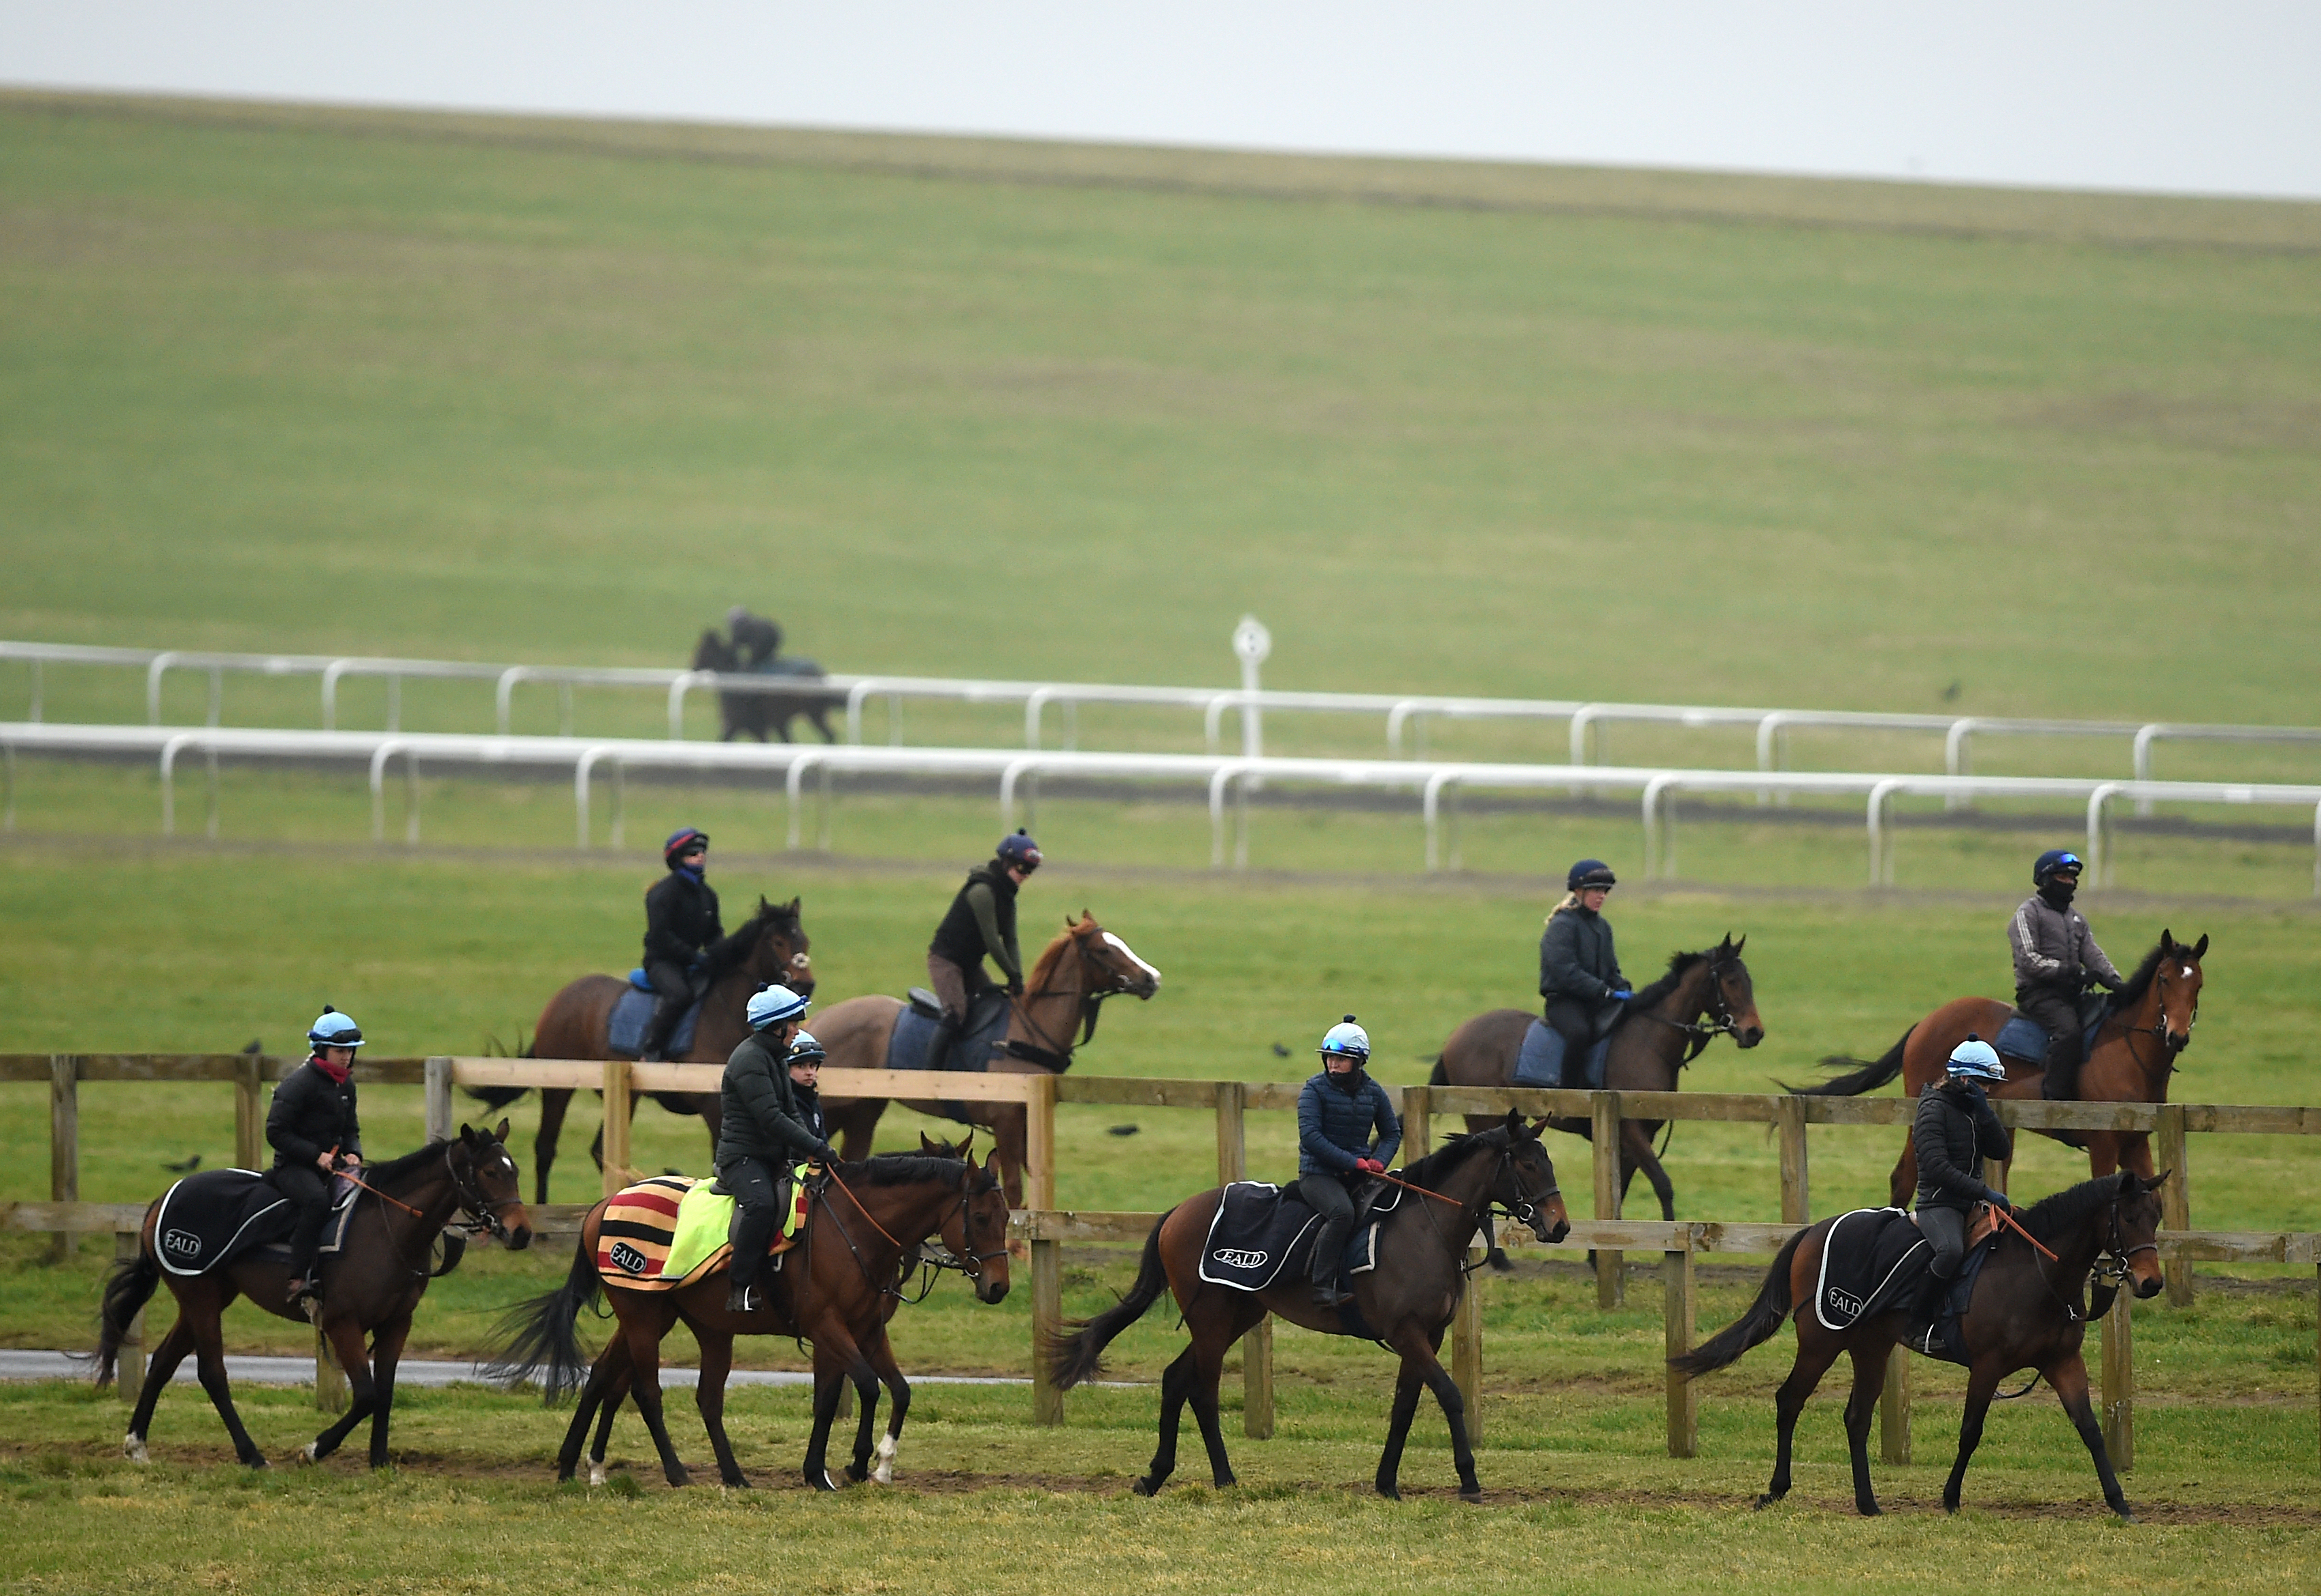 A number of Newmarket yards have been tested so far